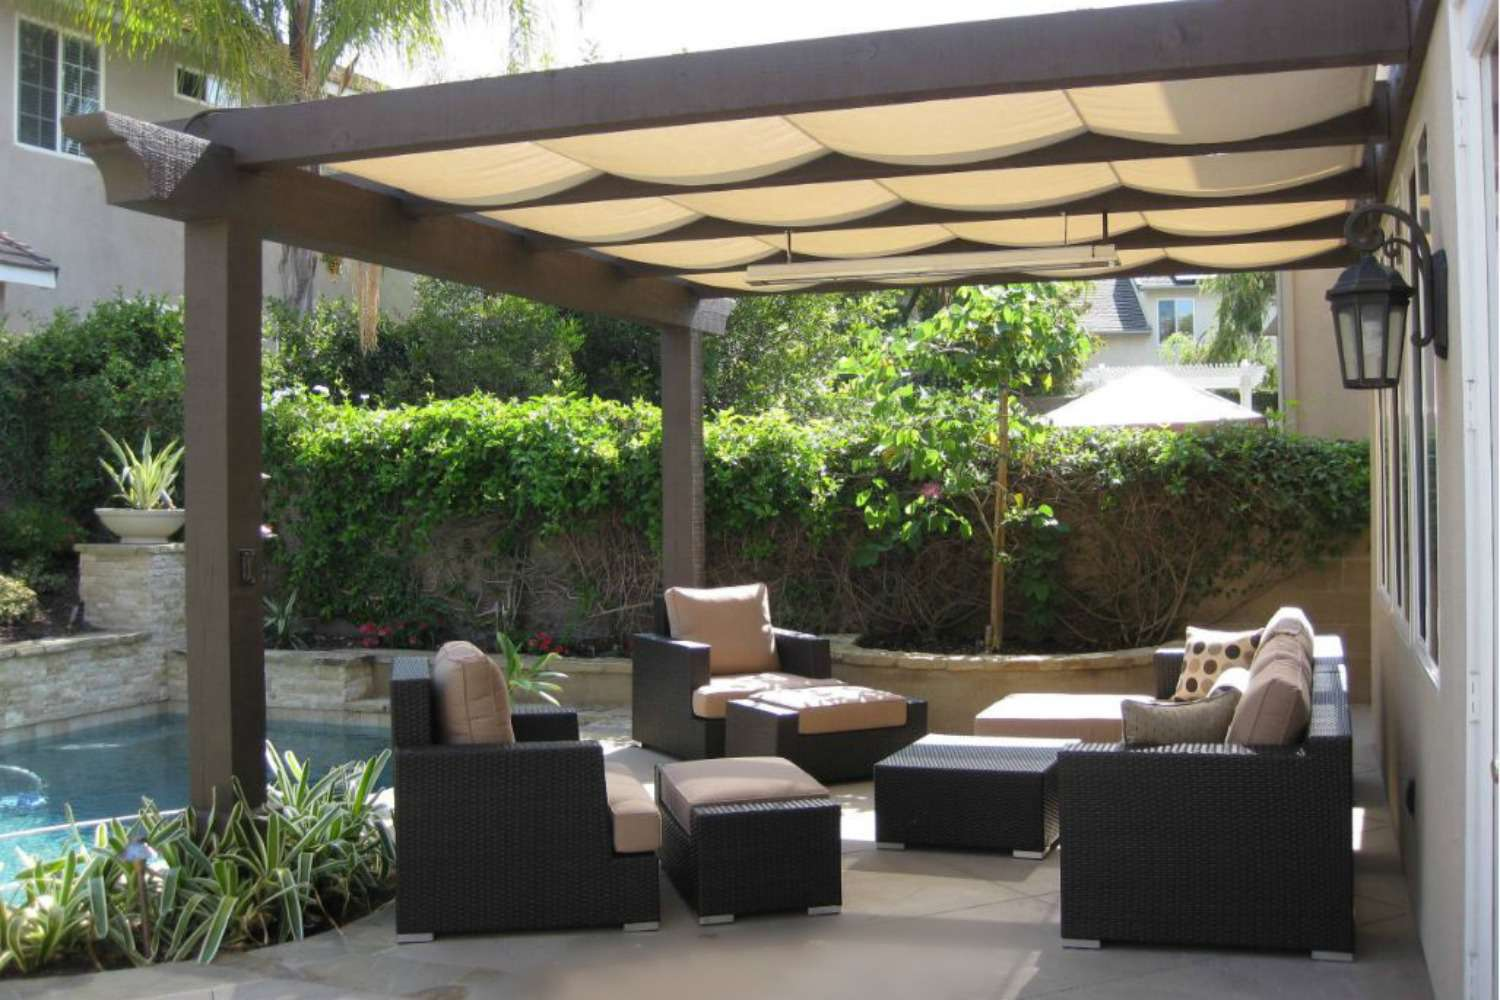 15 shade ideas for your outdoor space